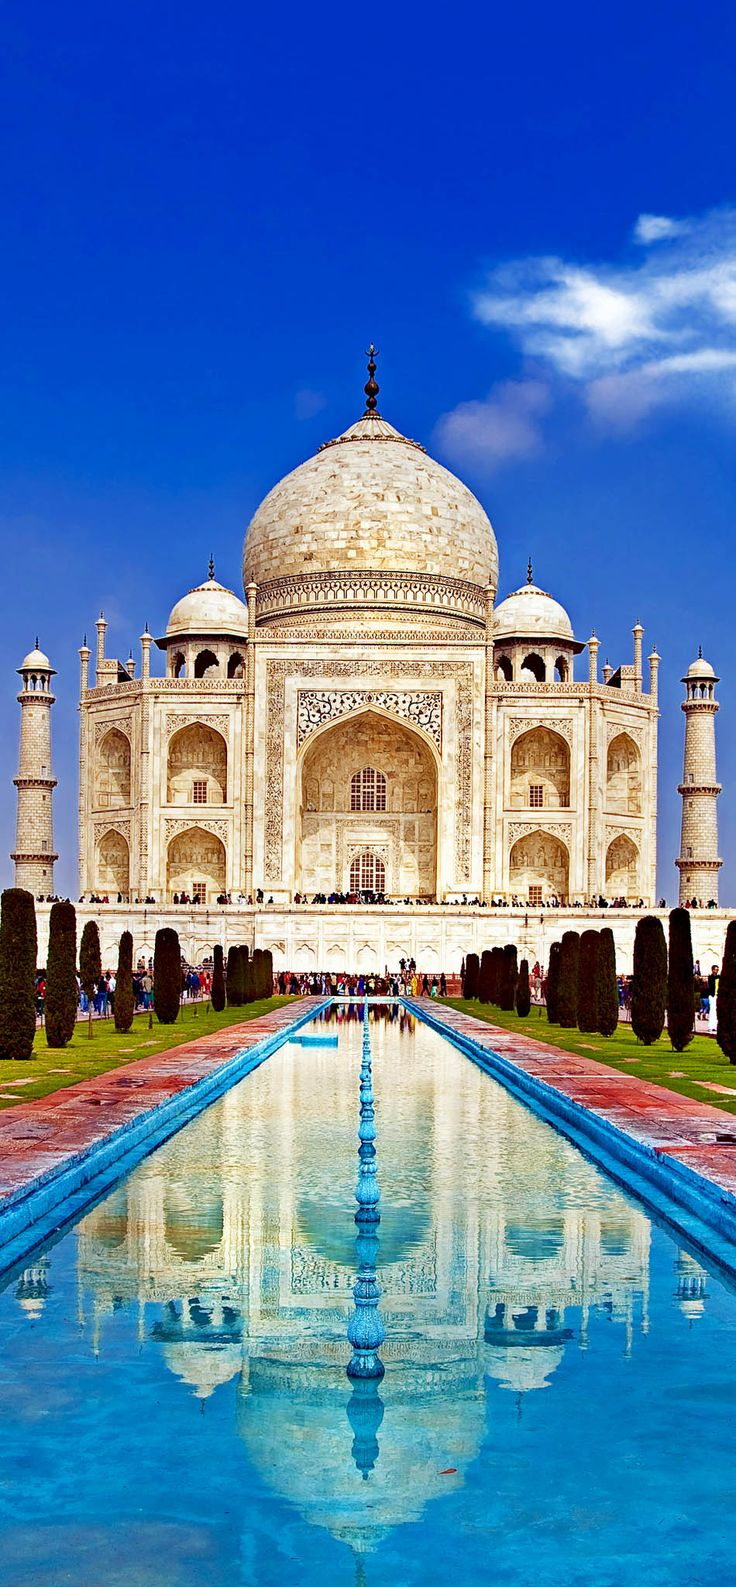 The Taj Mahal, India's architectural crown jewel is one of the seven wonders of the world. #Travel